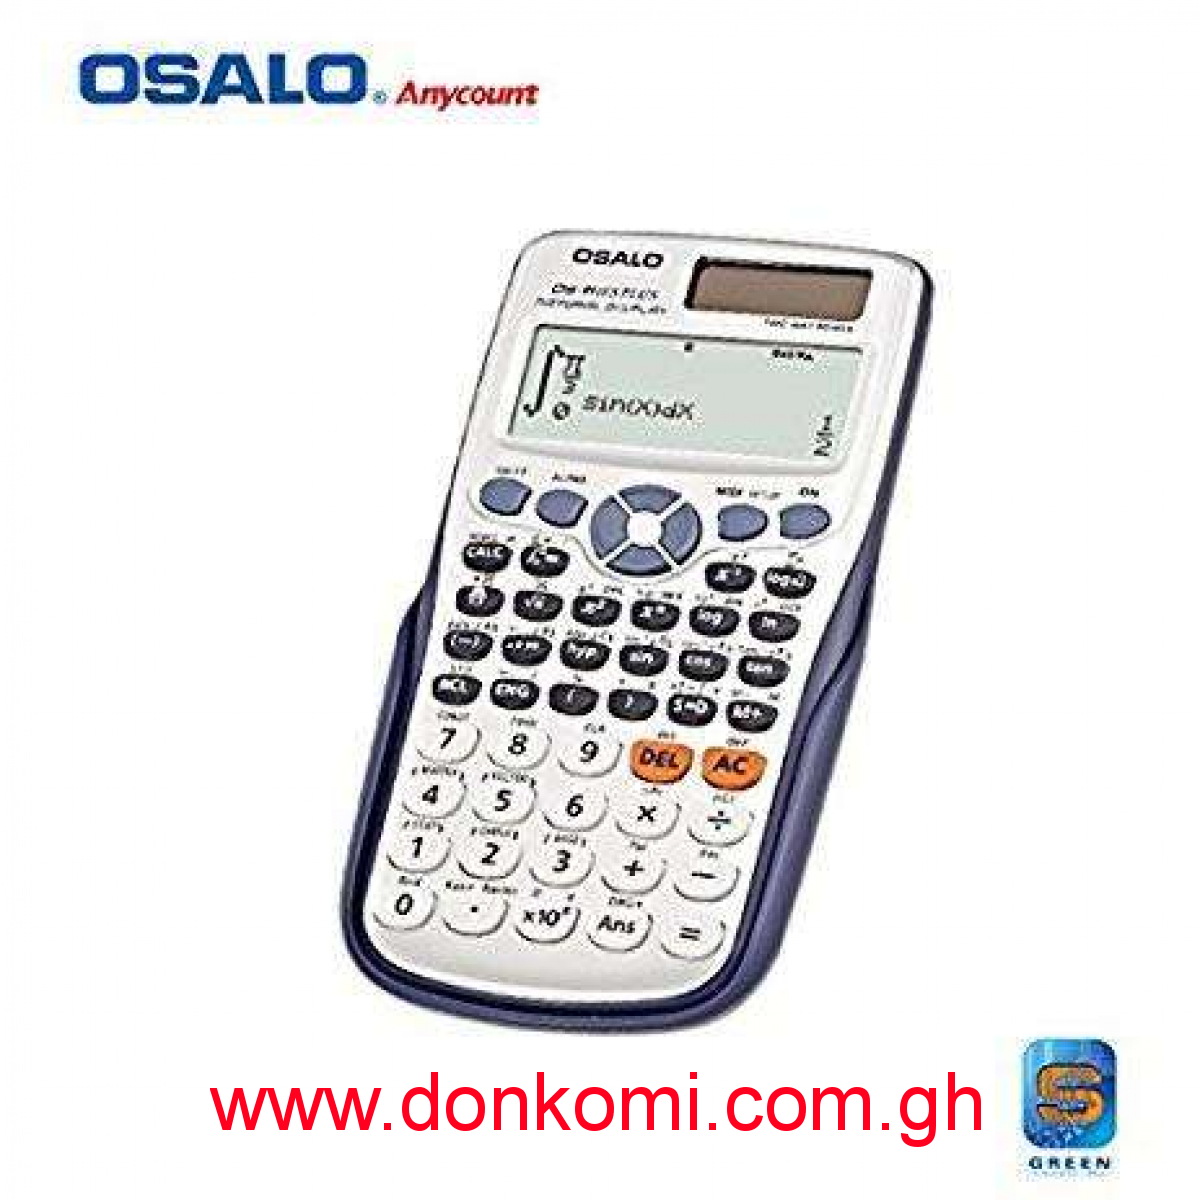 osalo scientific calculators (wholesale prices)